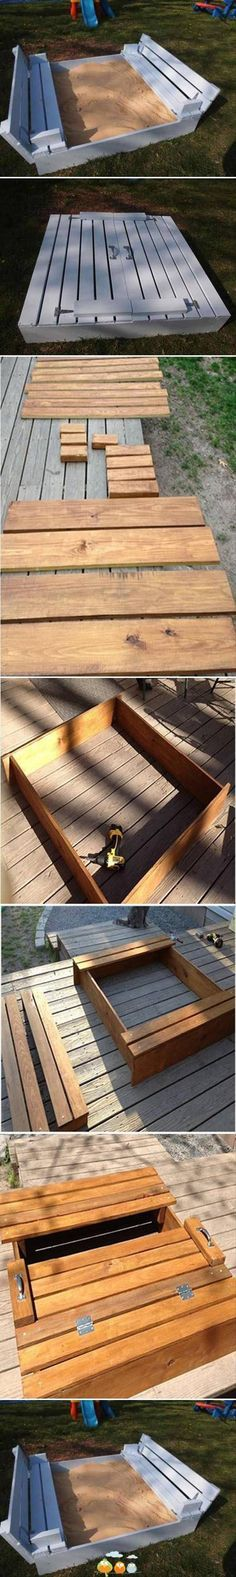 pallet ideas (5) http://www.dumpaday.com/genius-ideas-2/30-amazing-uses-old-pallets/?utm_content=bufferaeb72&utm_medium=social&utm_source=pinterest.com&utm_campaign=buffer http://calgary.isgreen.ca/energy/beyond-the-tesla-powerwall-how-energy-storage-is-shaping-up-in-ontario/?utm_content=buffer50118&utm_medium=social&utm_source=pinterest.com&utm_campaign=buffer